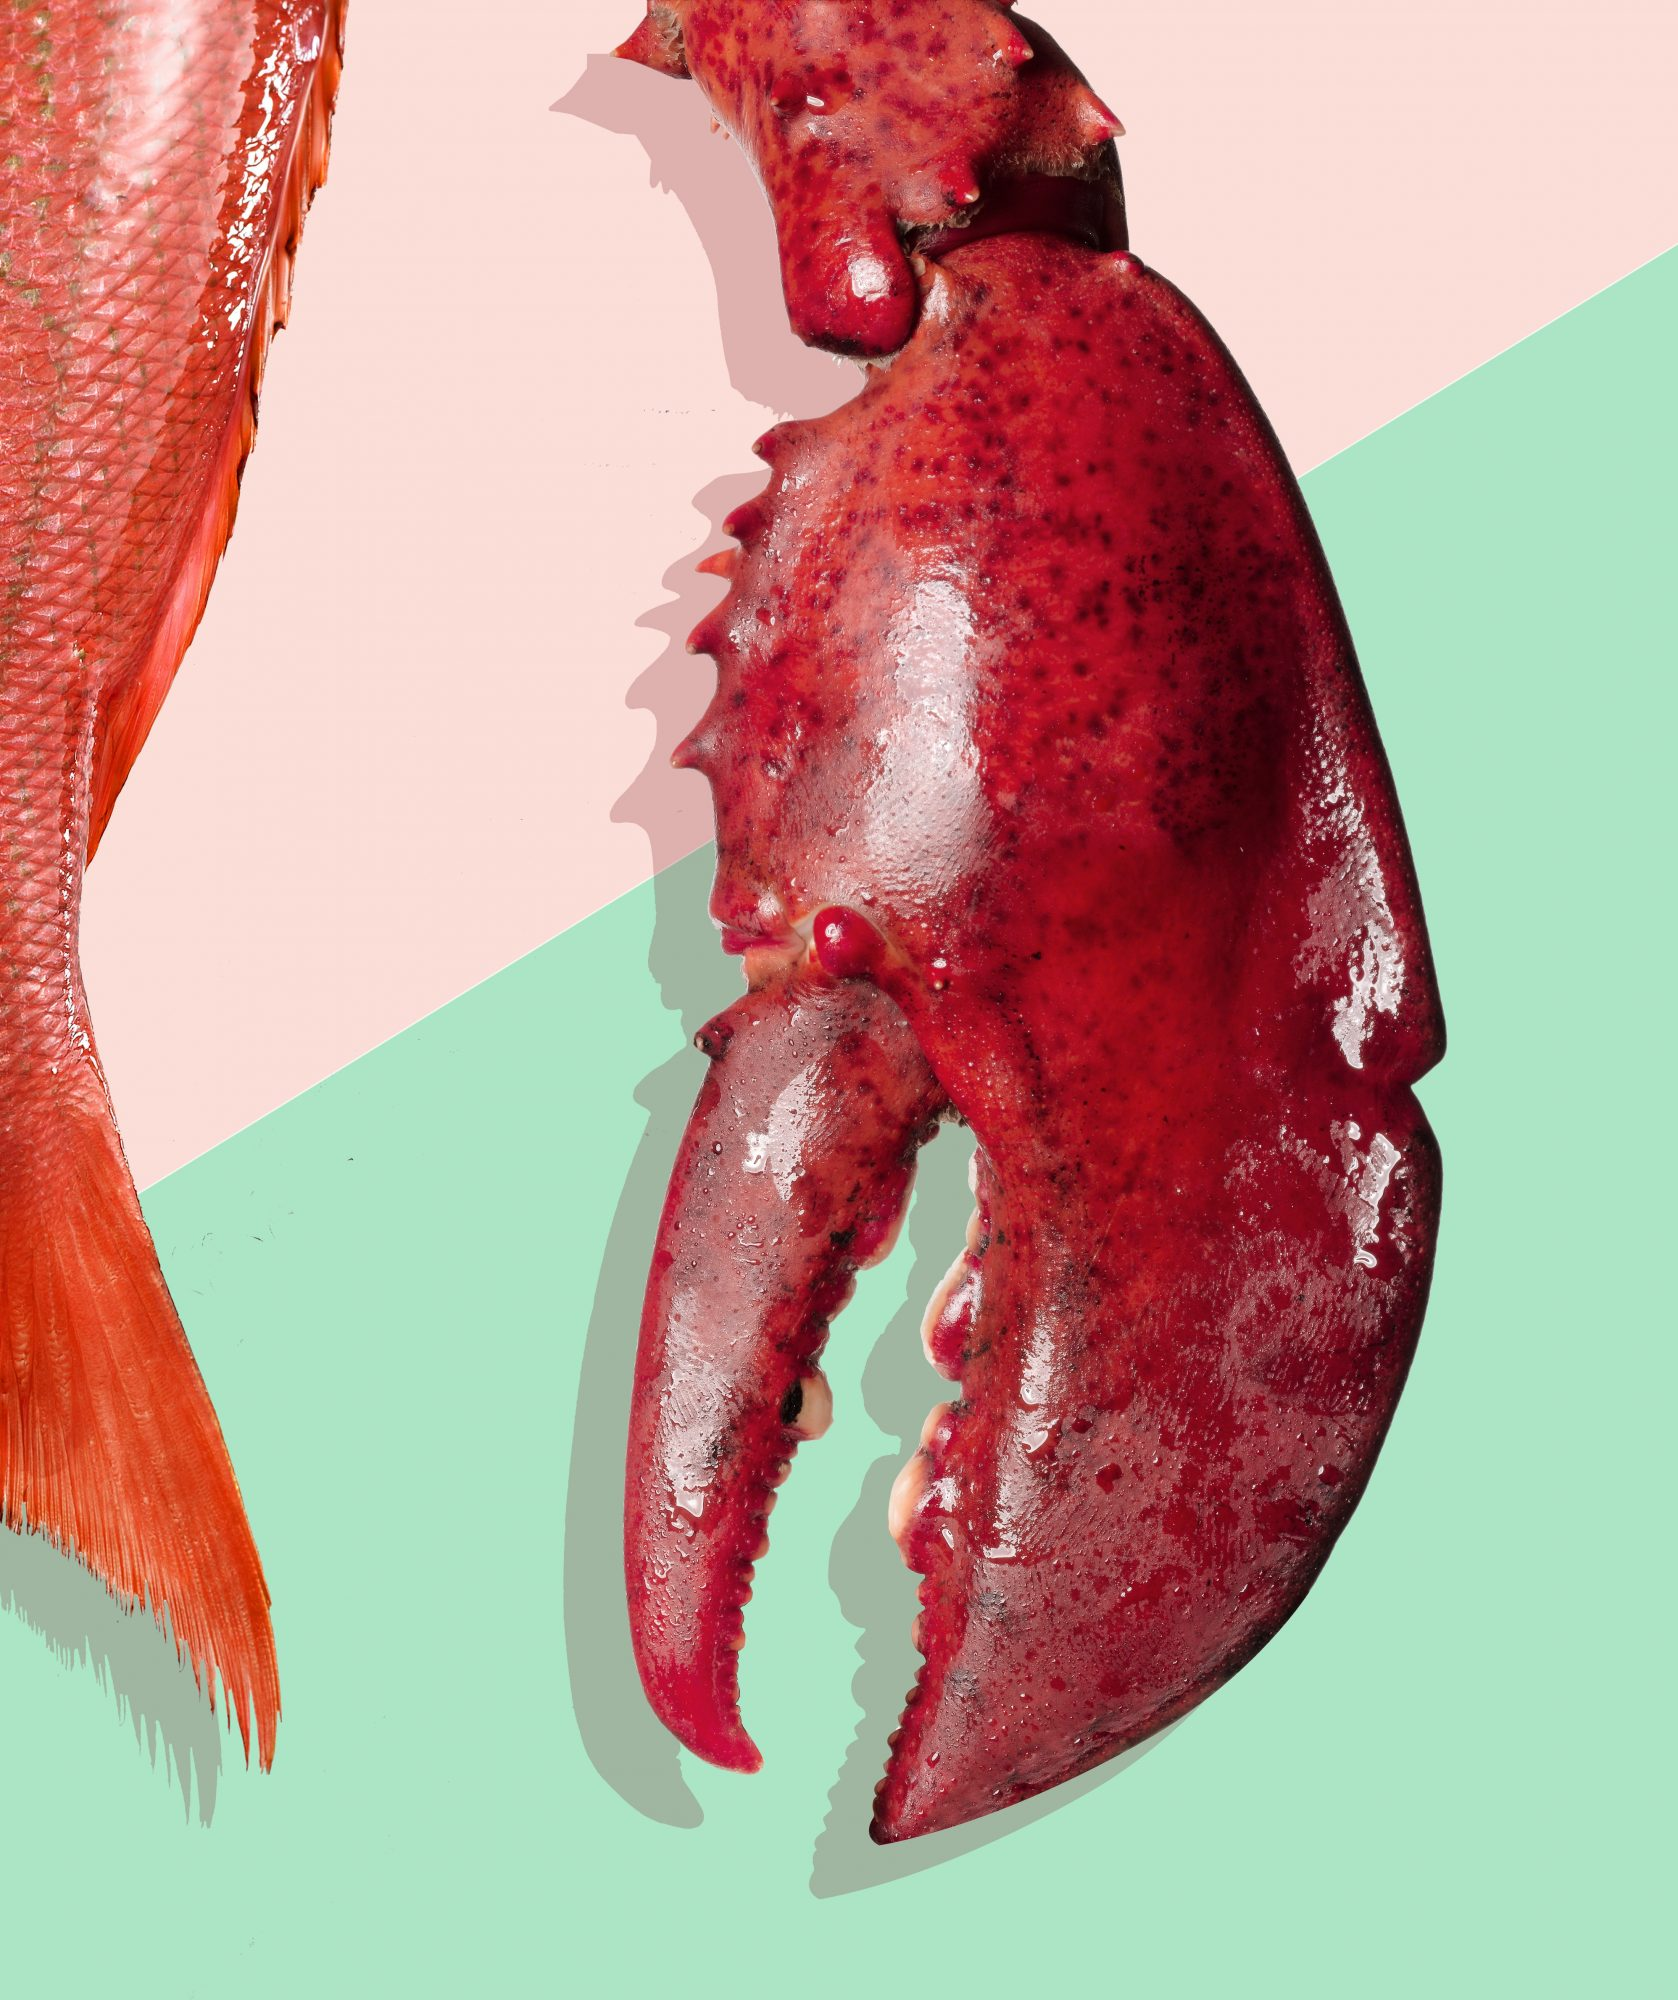 How to Select, Store, and Serve Seafood Safely, According to an Expert